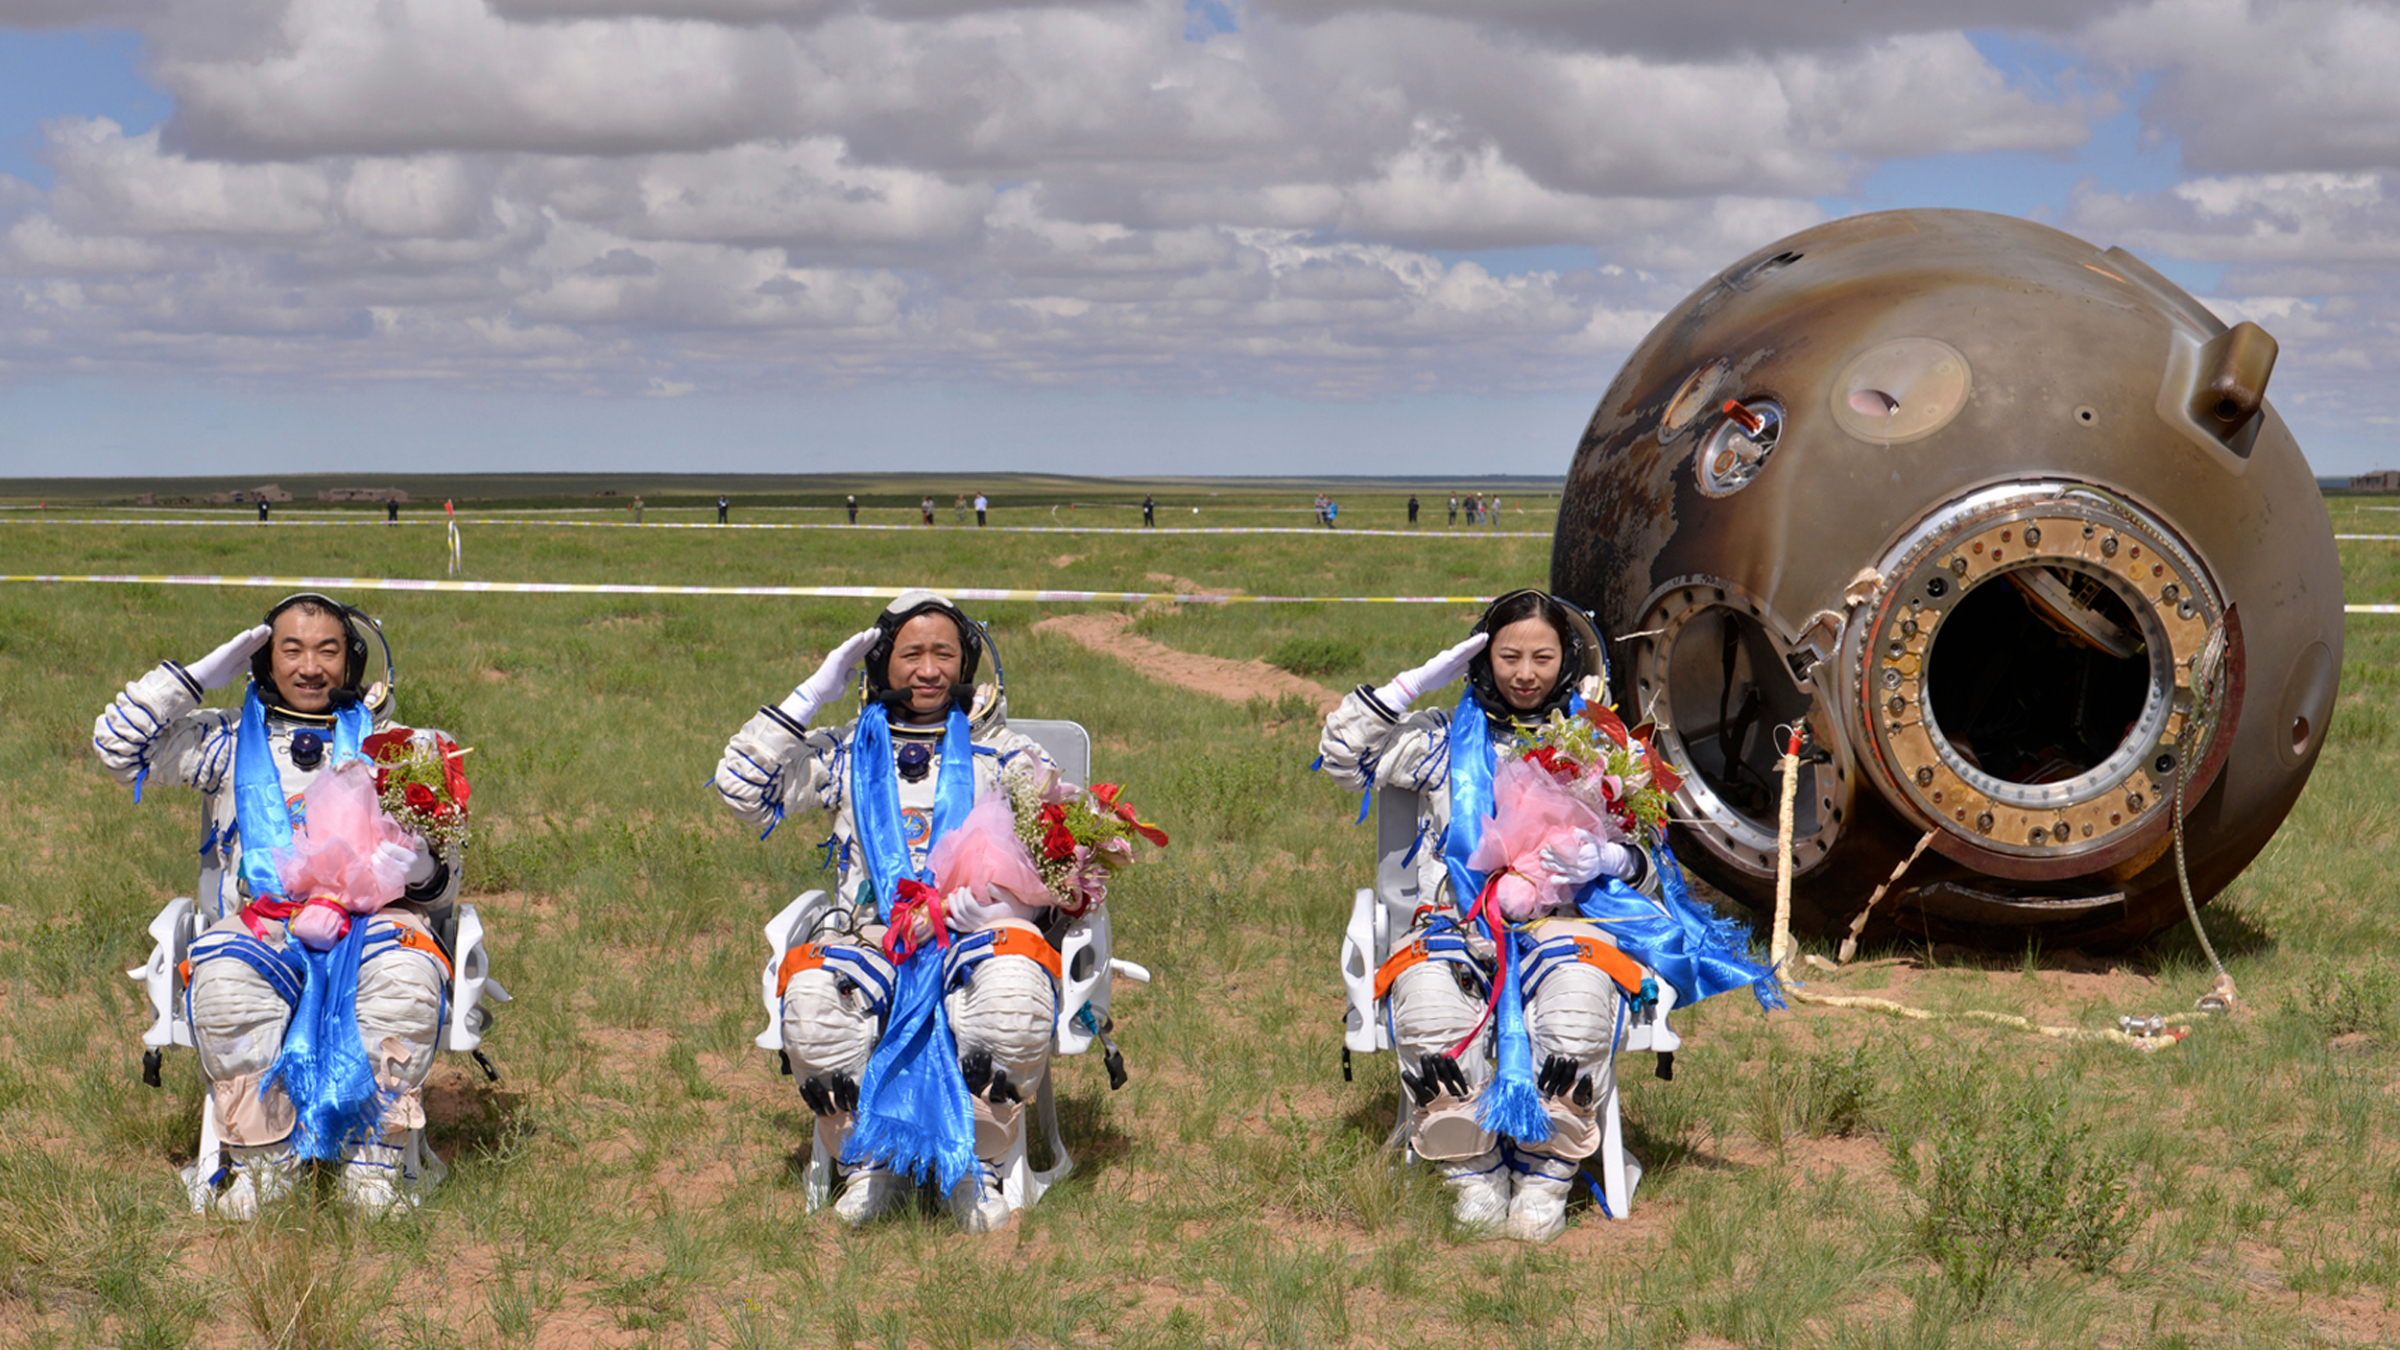 Astronauts (L-R) Zhang Xiaoguang, Nie Haisheng and Wang Yaping salute after returning to earth in the re-entry capsule of China's Shenzhou-10 spacecraft.